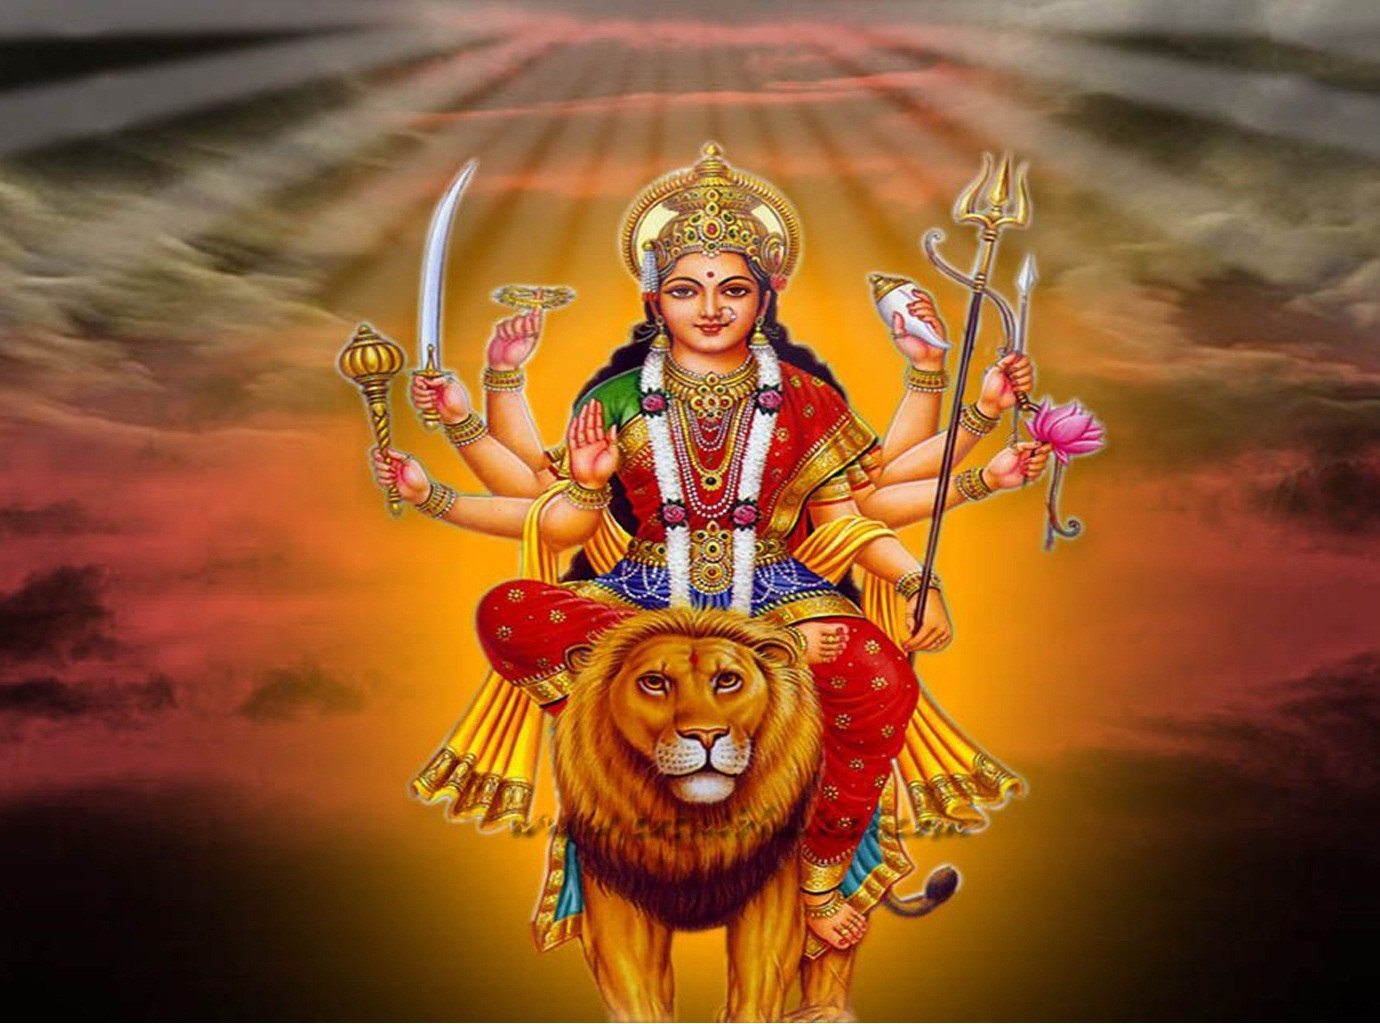 Maa Durga HD Images, Photos, Wallpapers and Picture for Smartphone